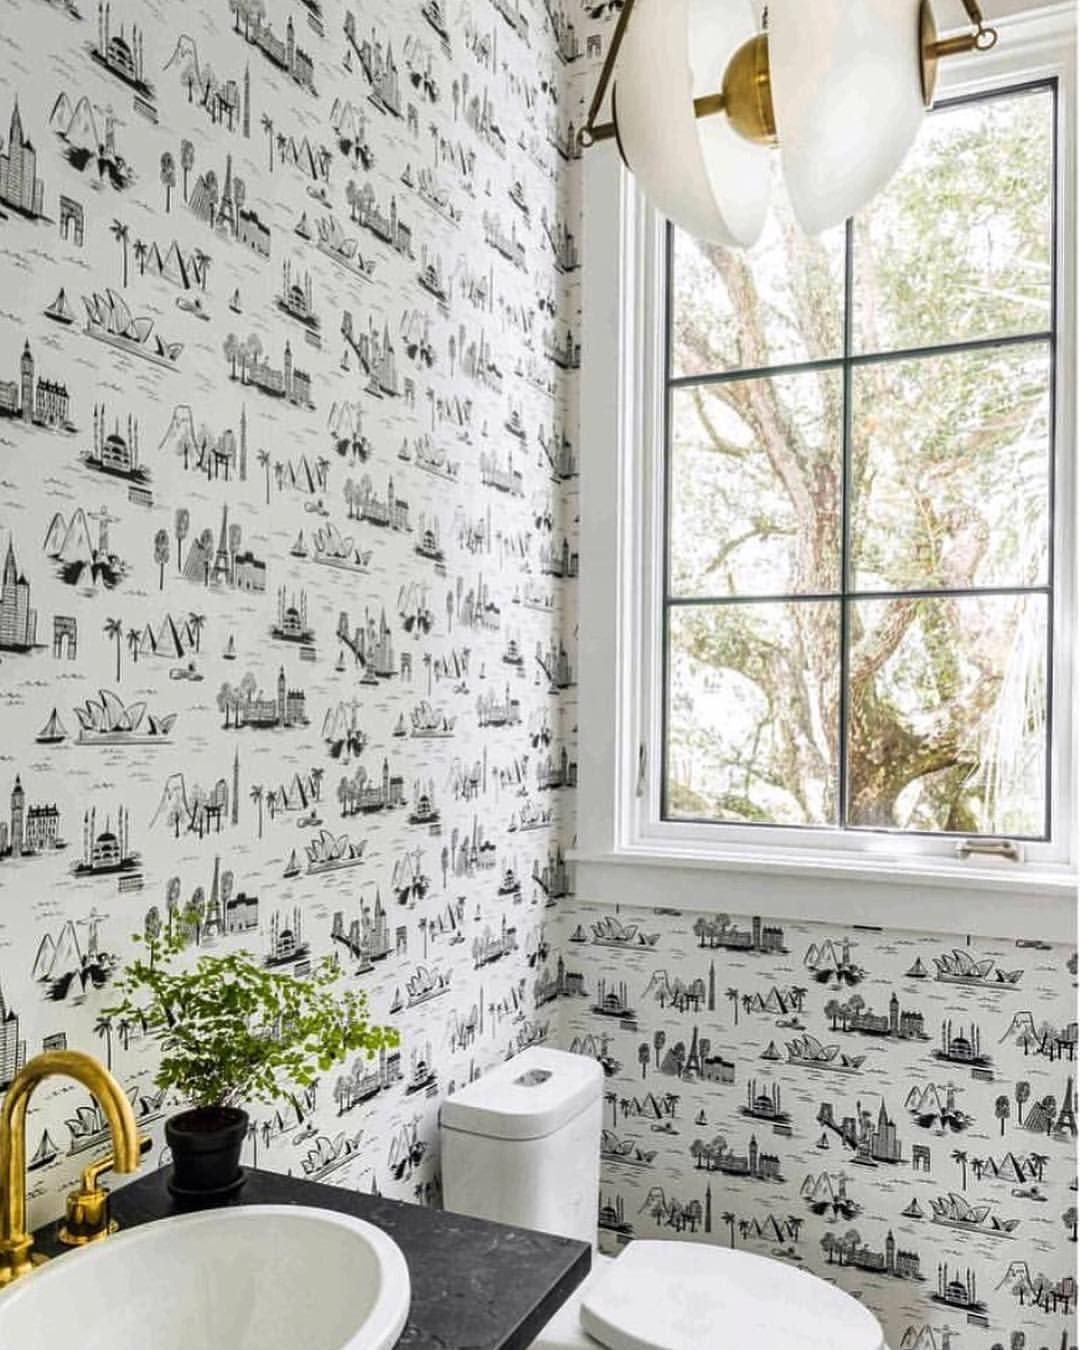 Toile Bathroom Decor Awesome Black and White W Brass Details This Worldly Bathroom Has